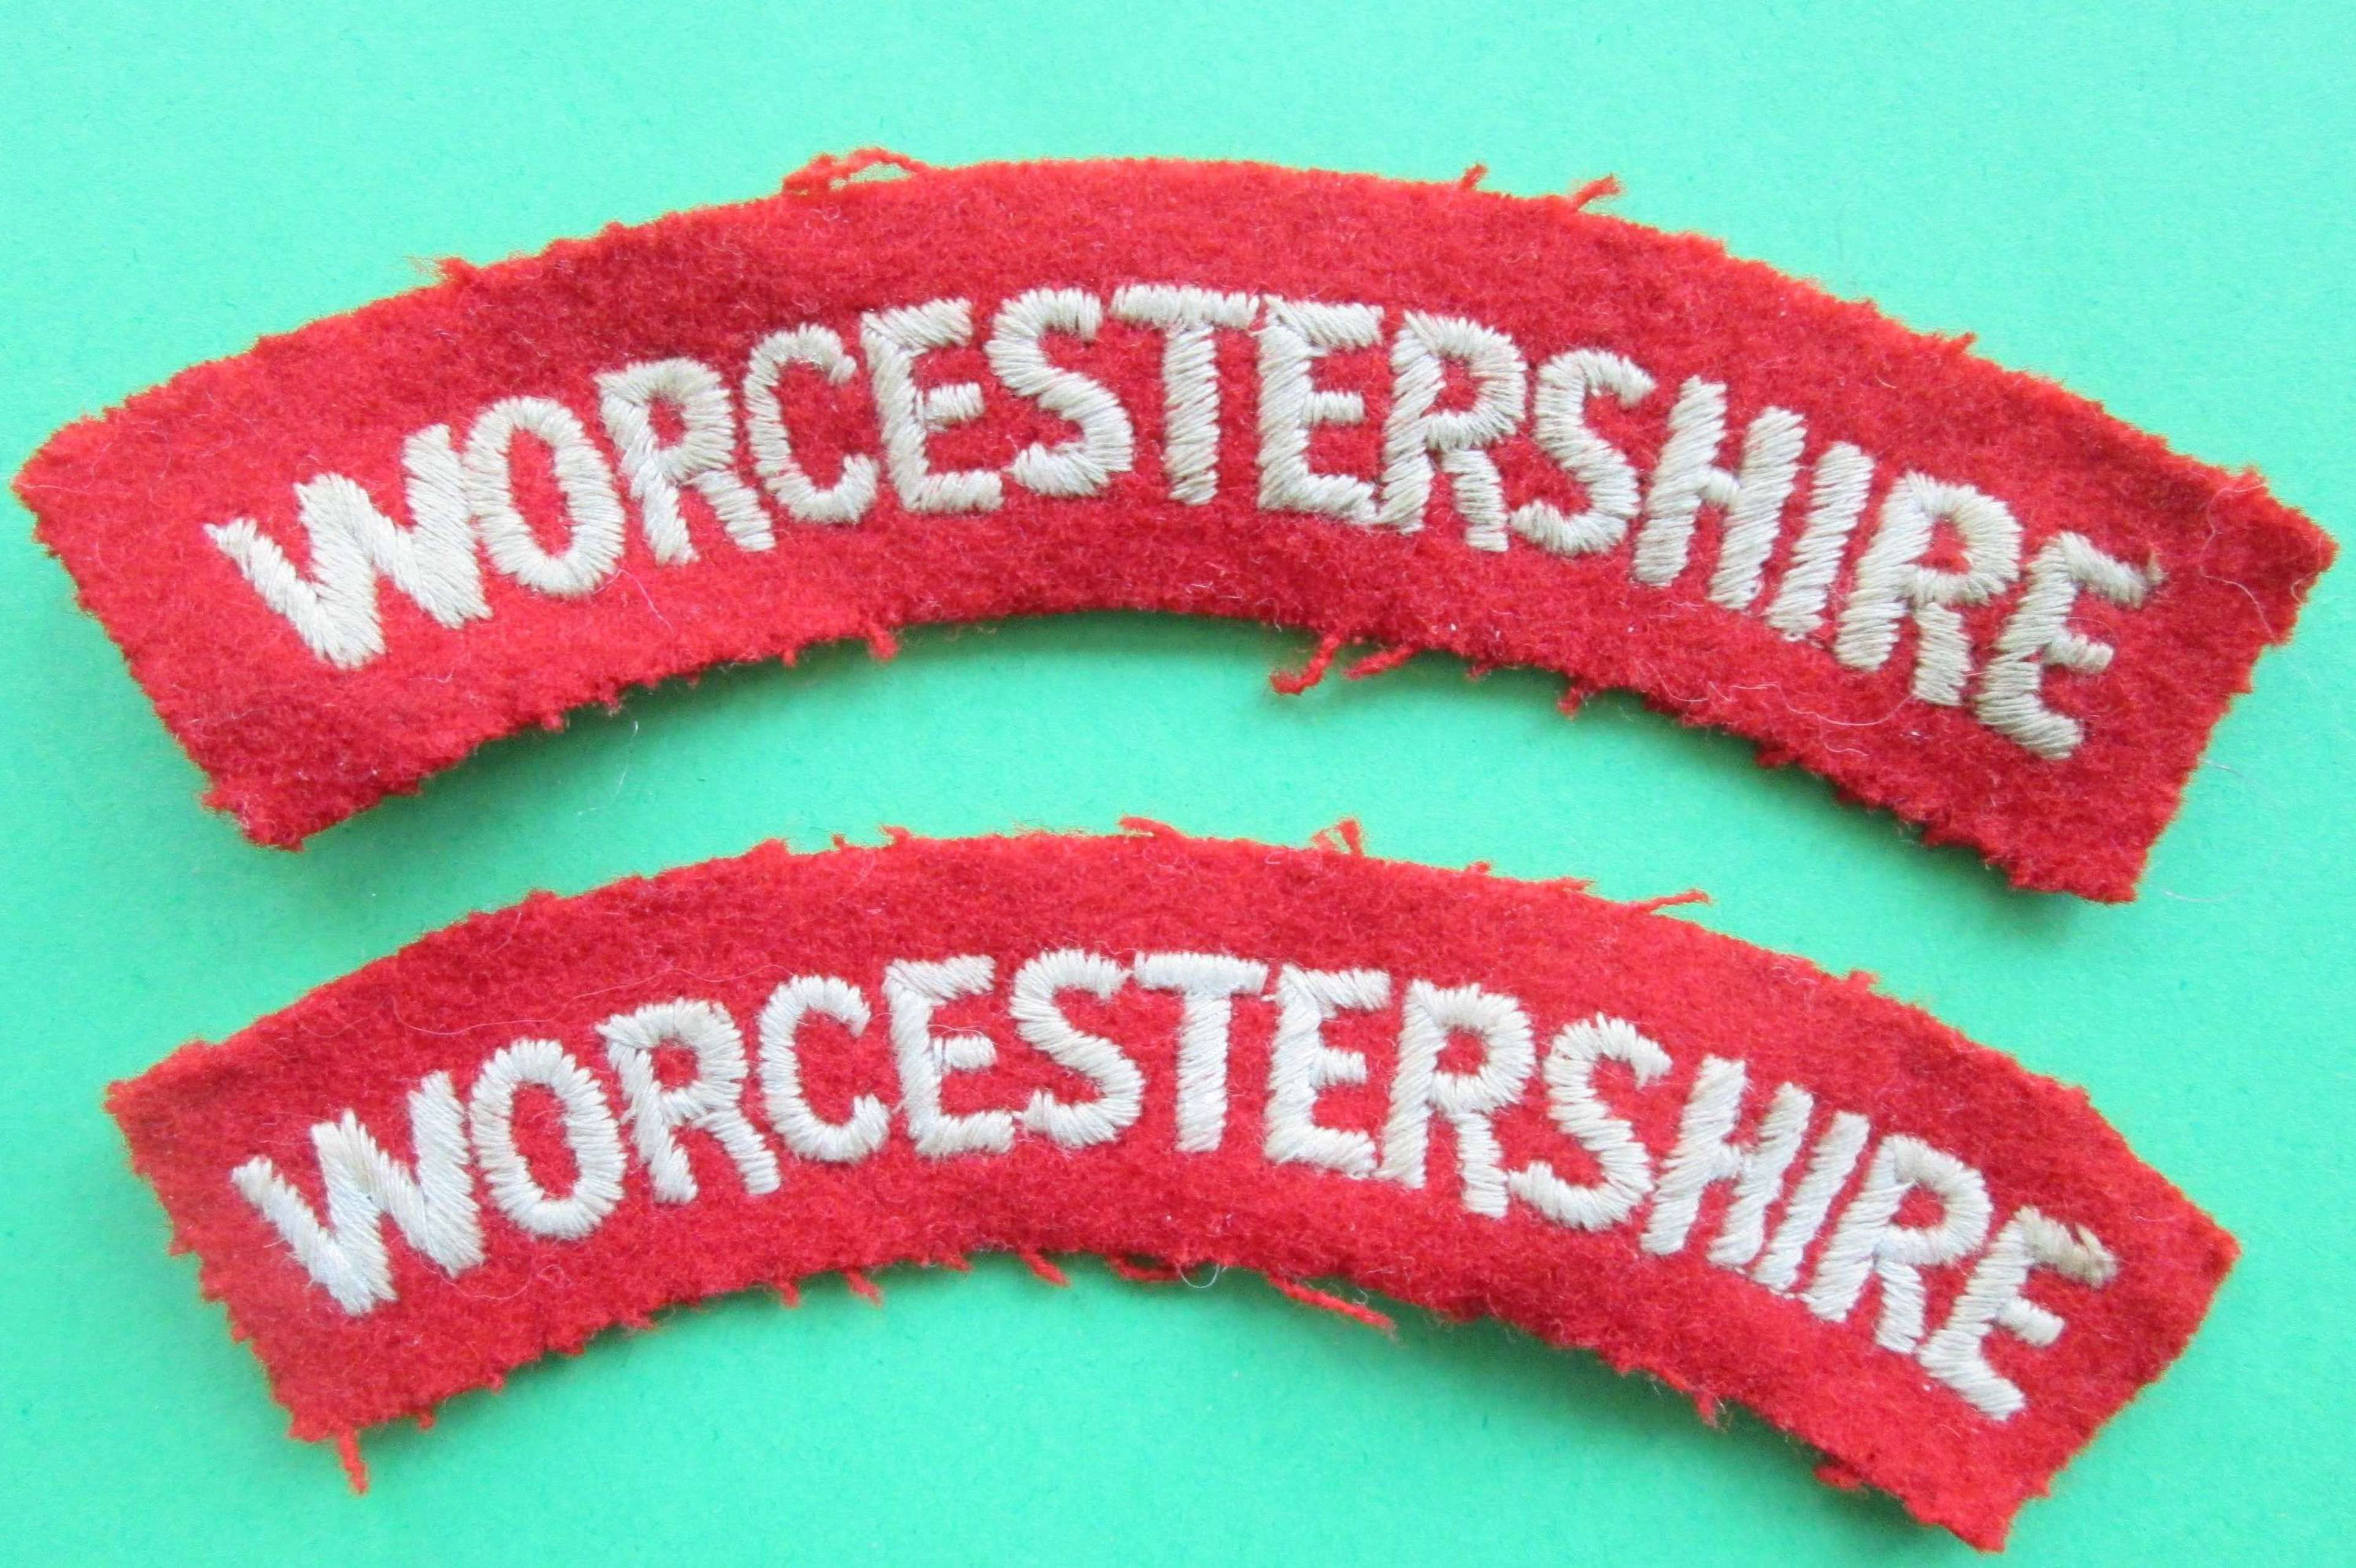 A PAIR OF WORCESTERSHIRE SHOULDER TITLES